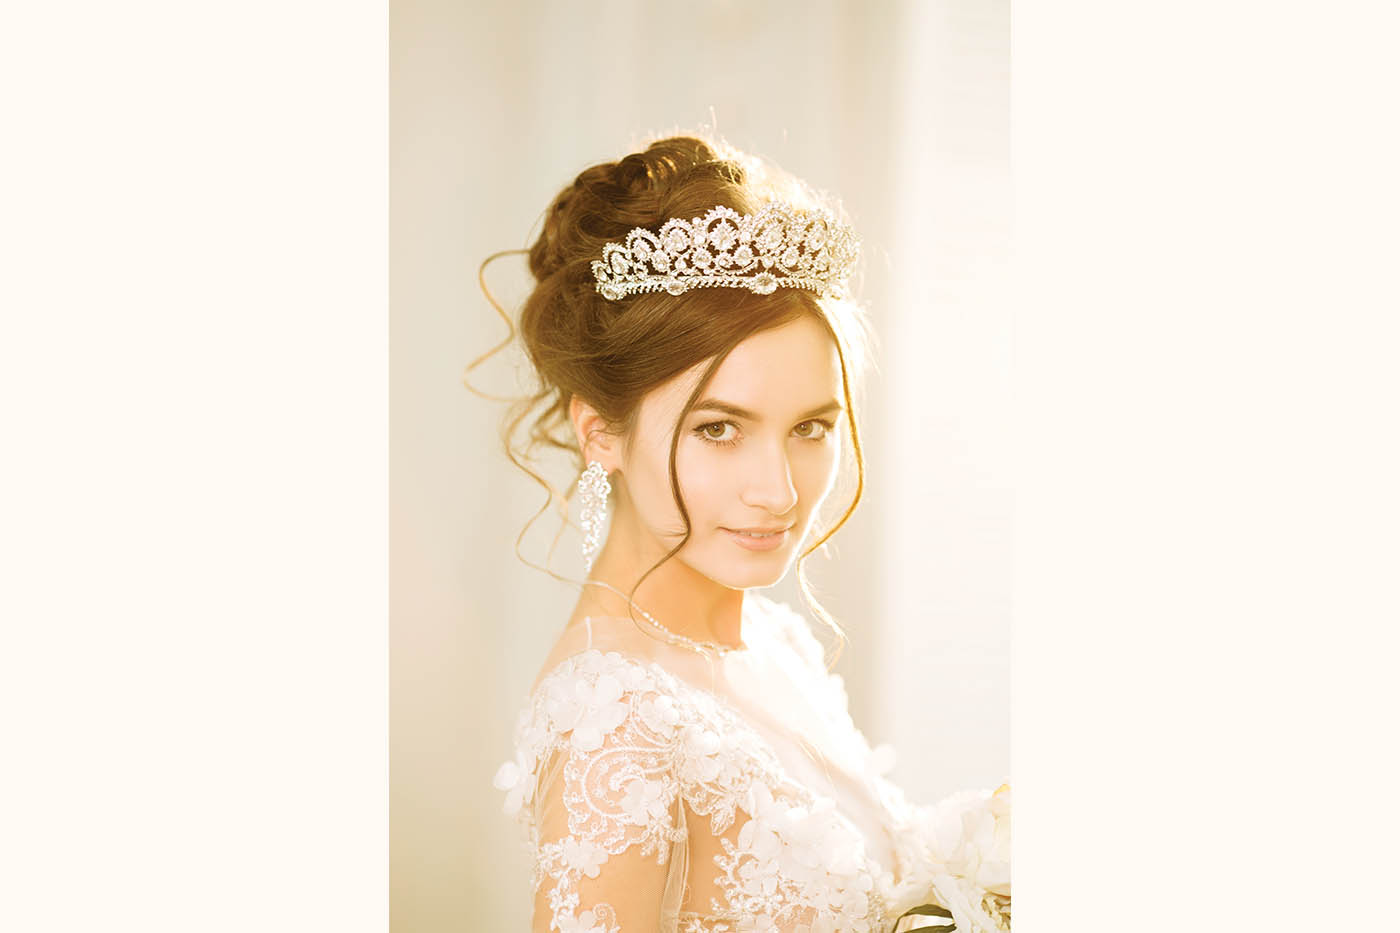 Choosing Perfect Hairstyles for Destination Weddings